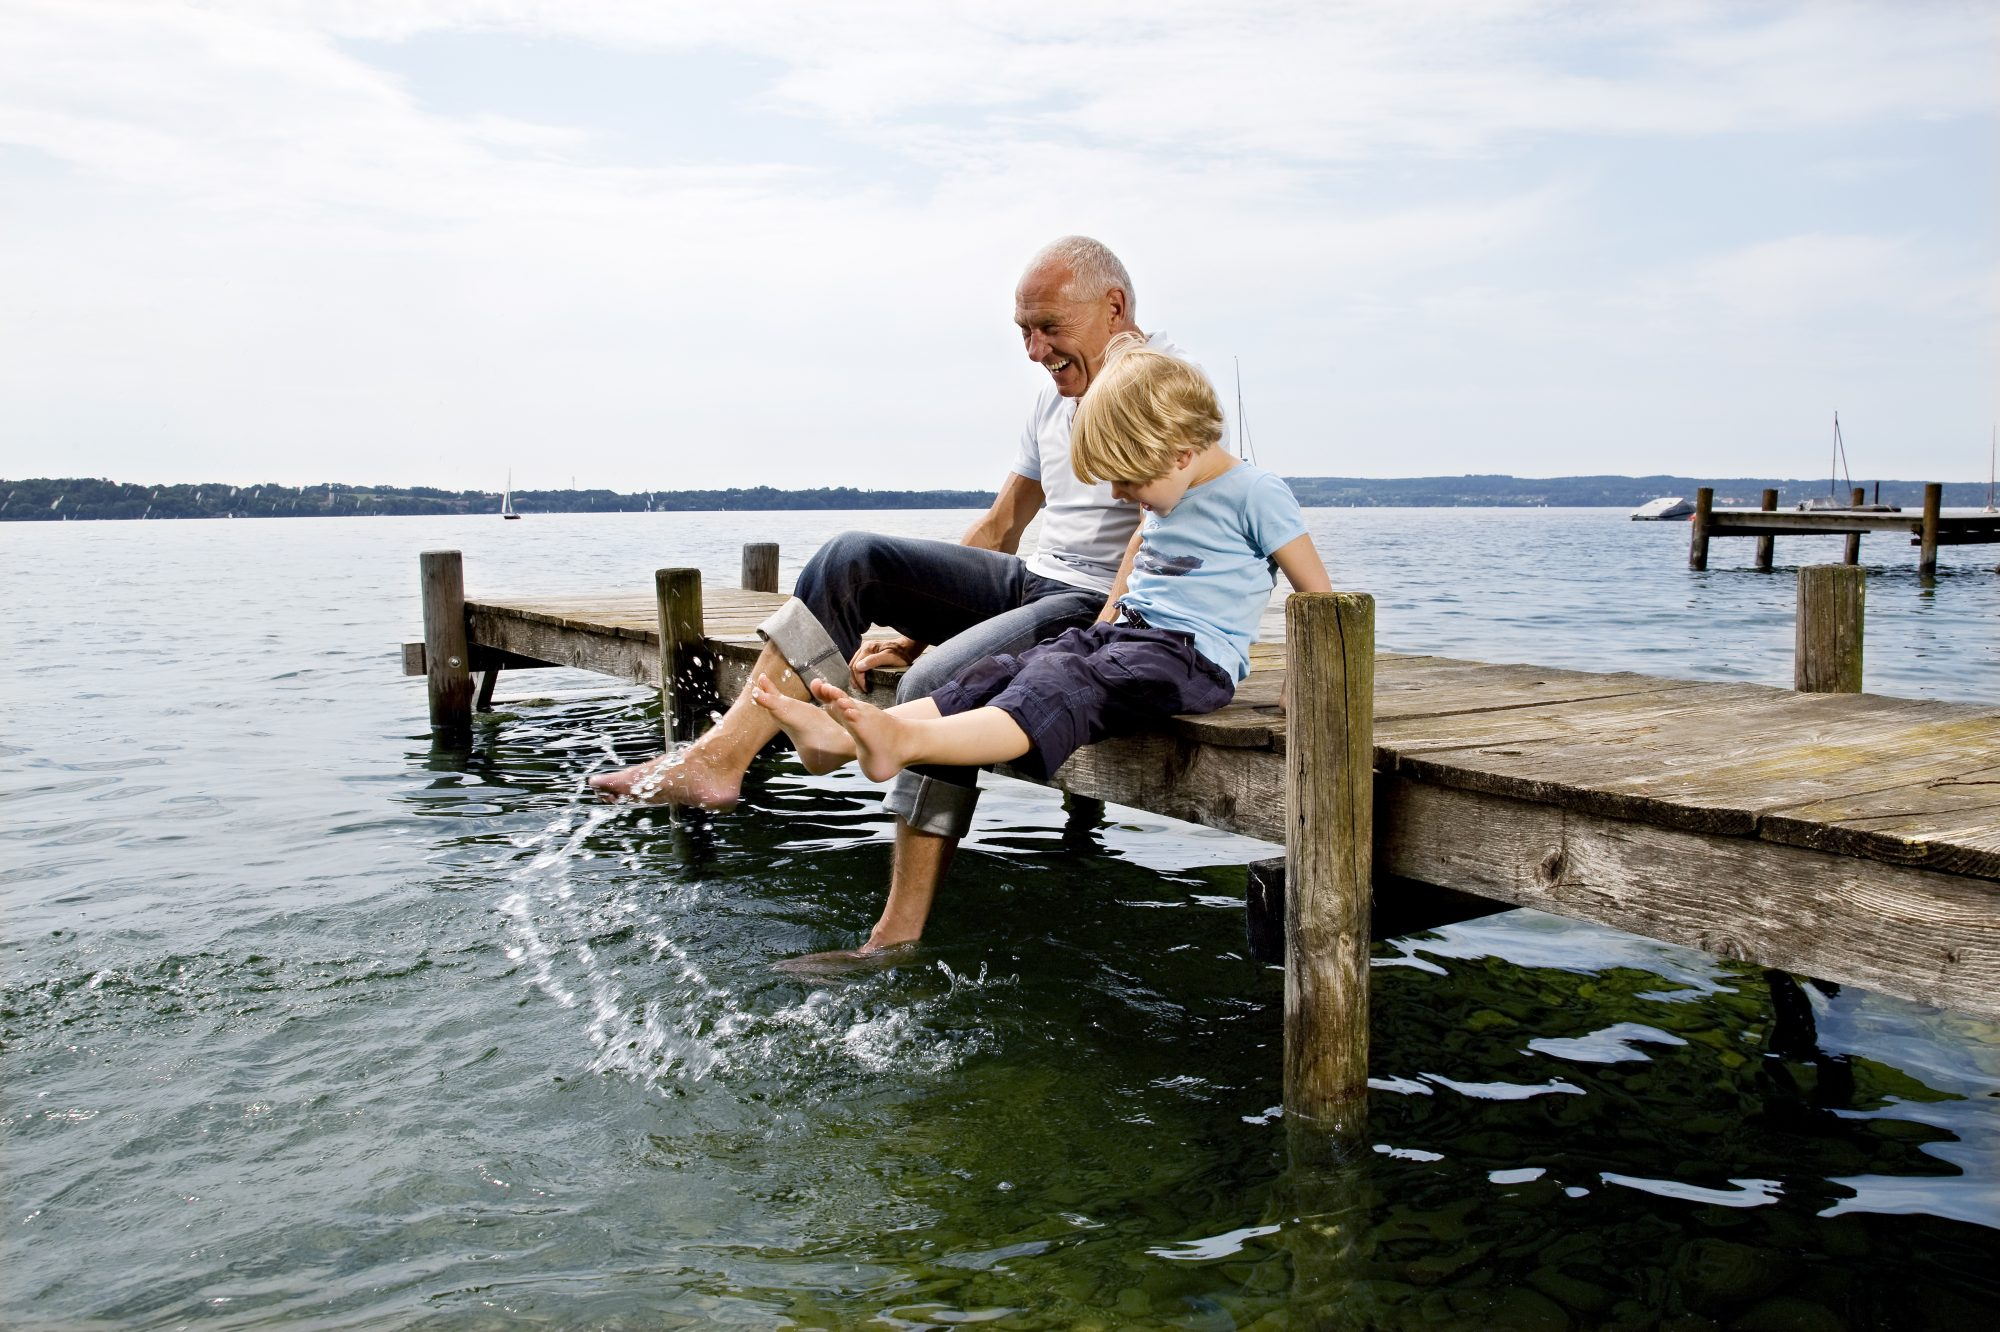 Grandfather and Grandson Splashing on Dock